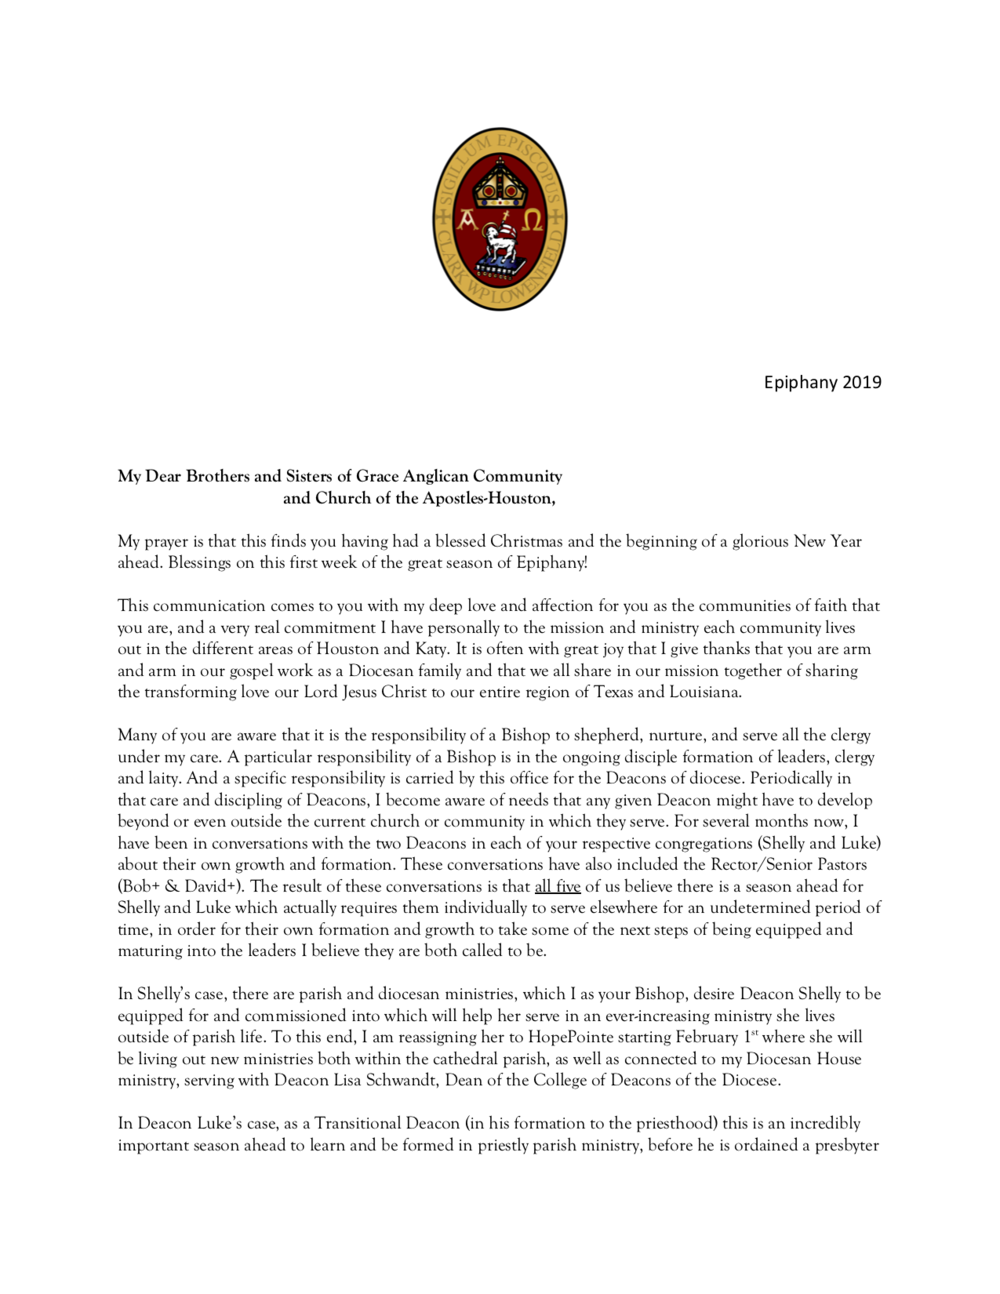 Bishop Clark Letter Regarding Luke and Shelley - page2.png